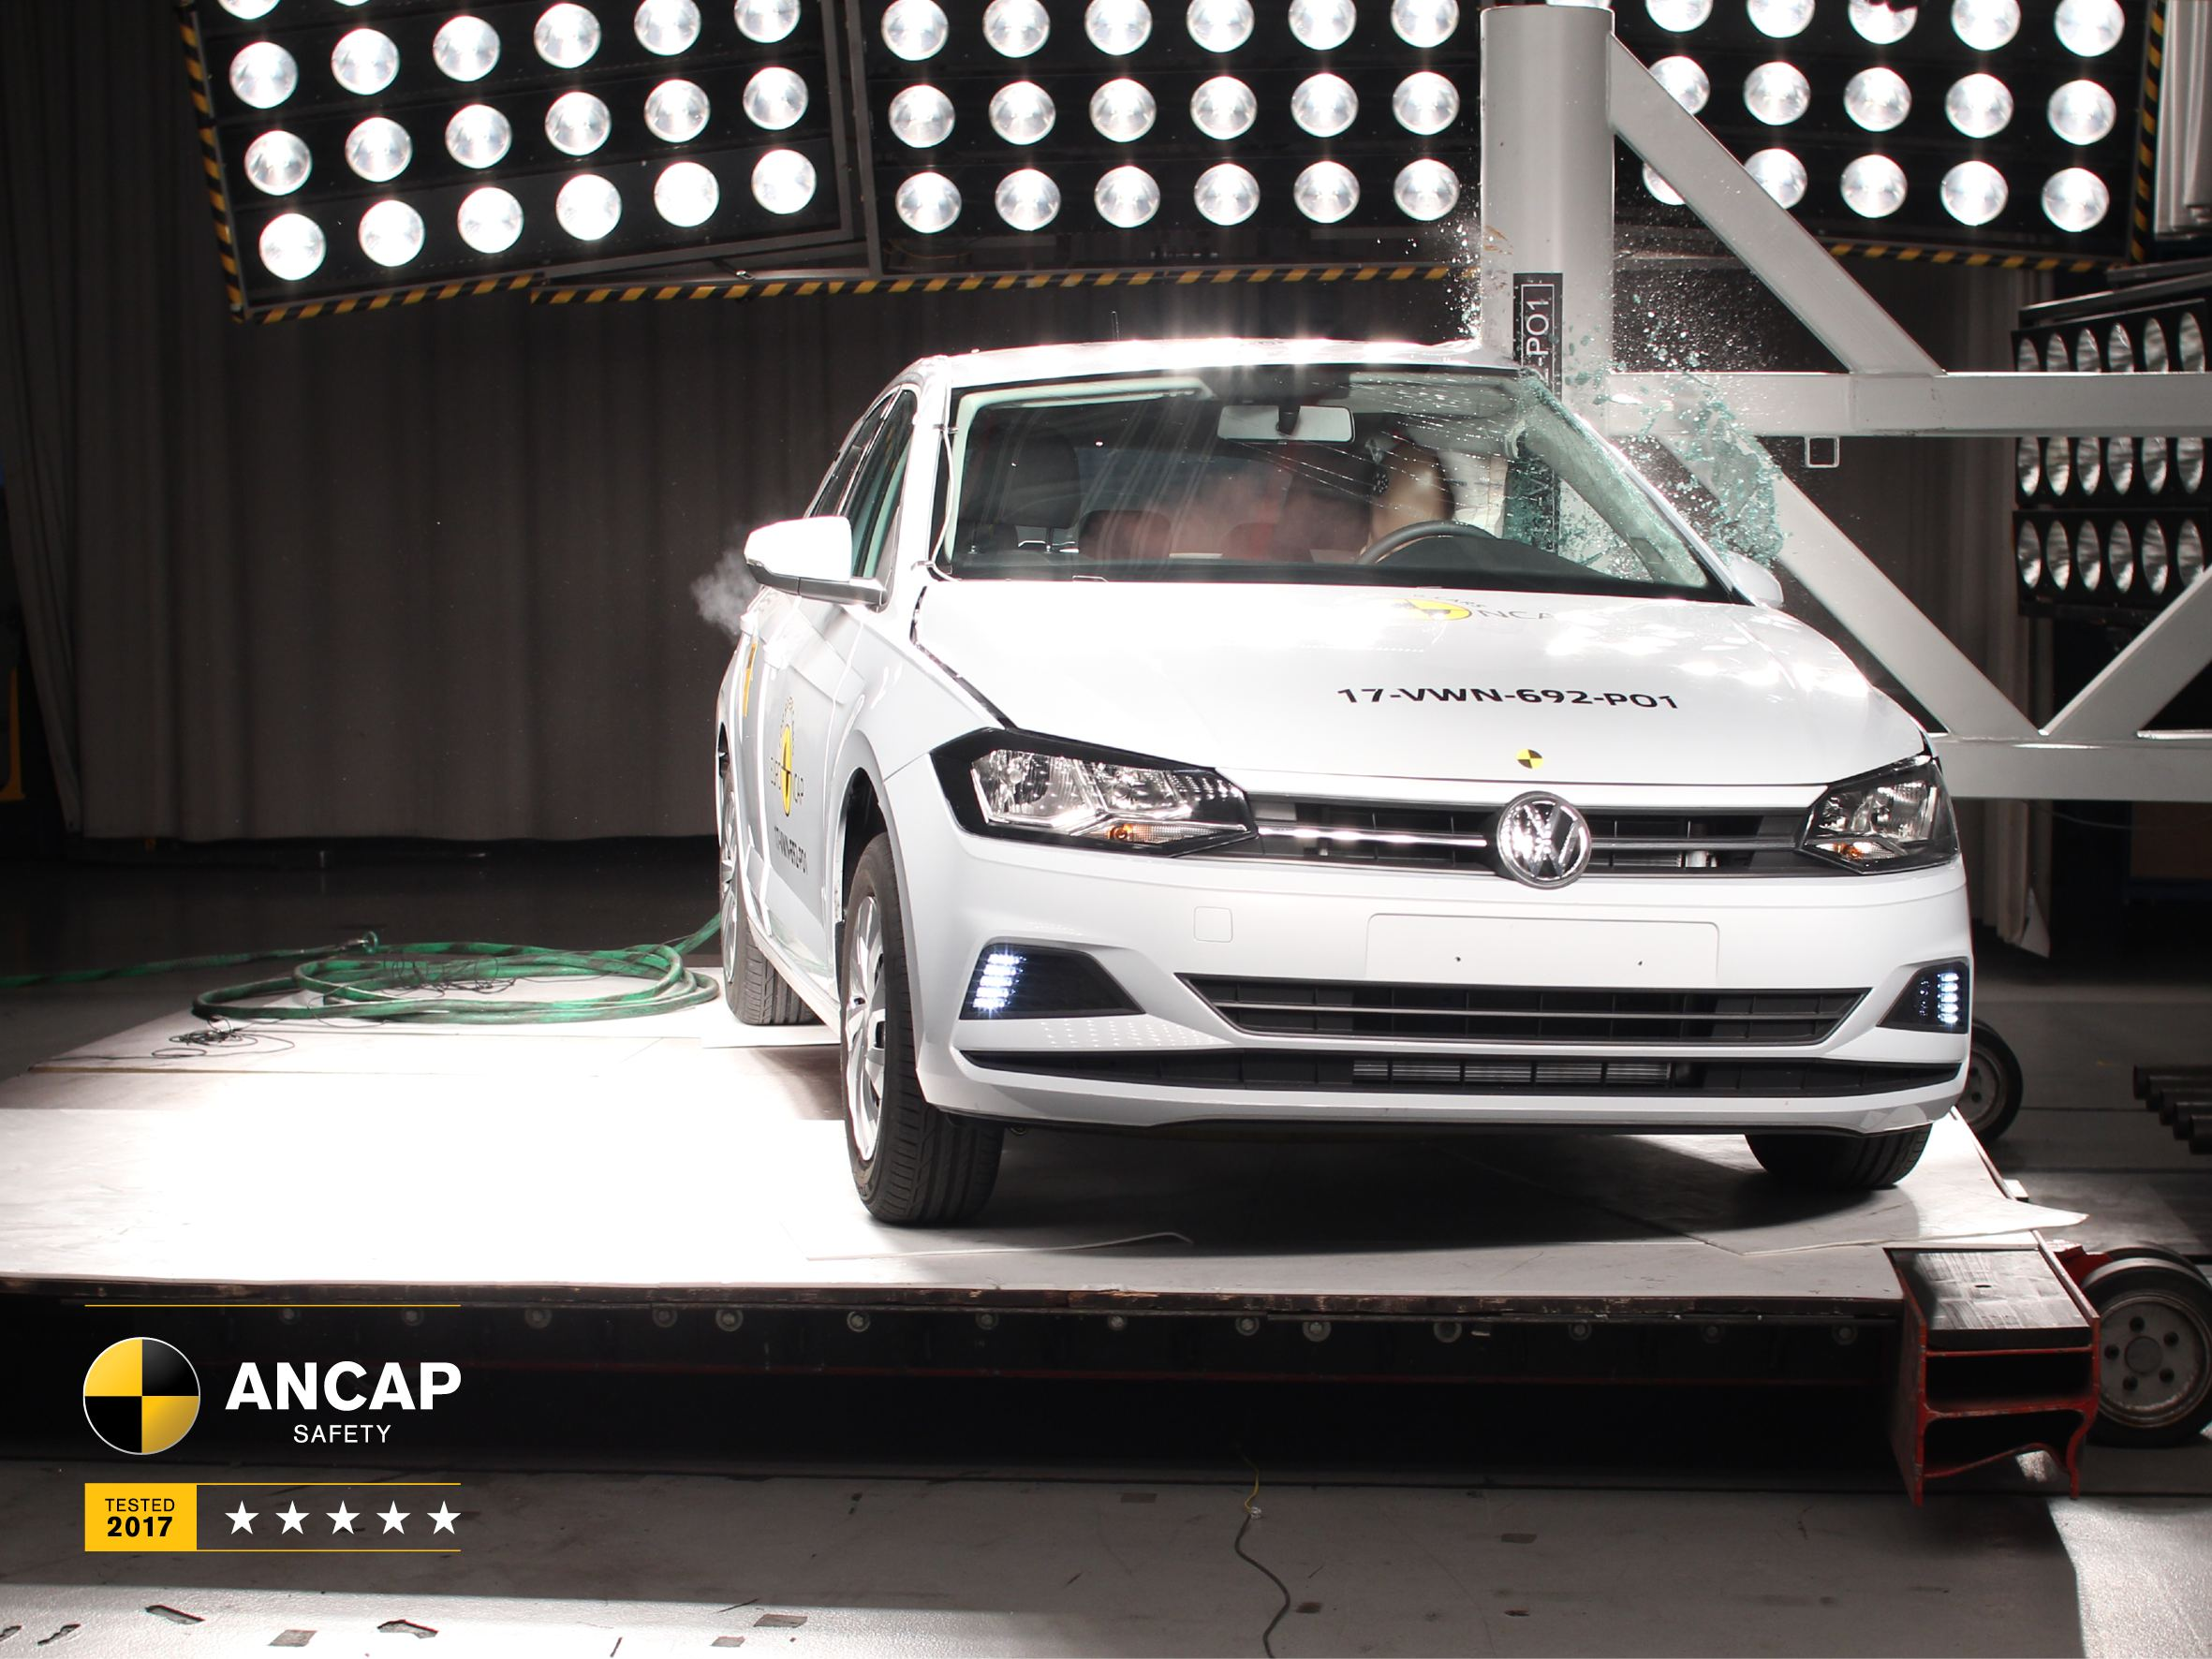 2018 Volkswagen Polo scored highly for occupant protection